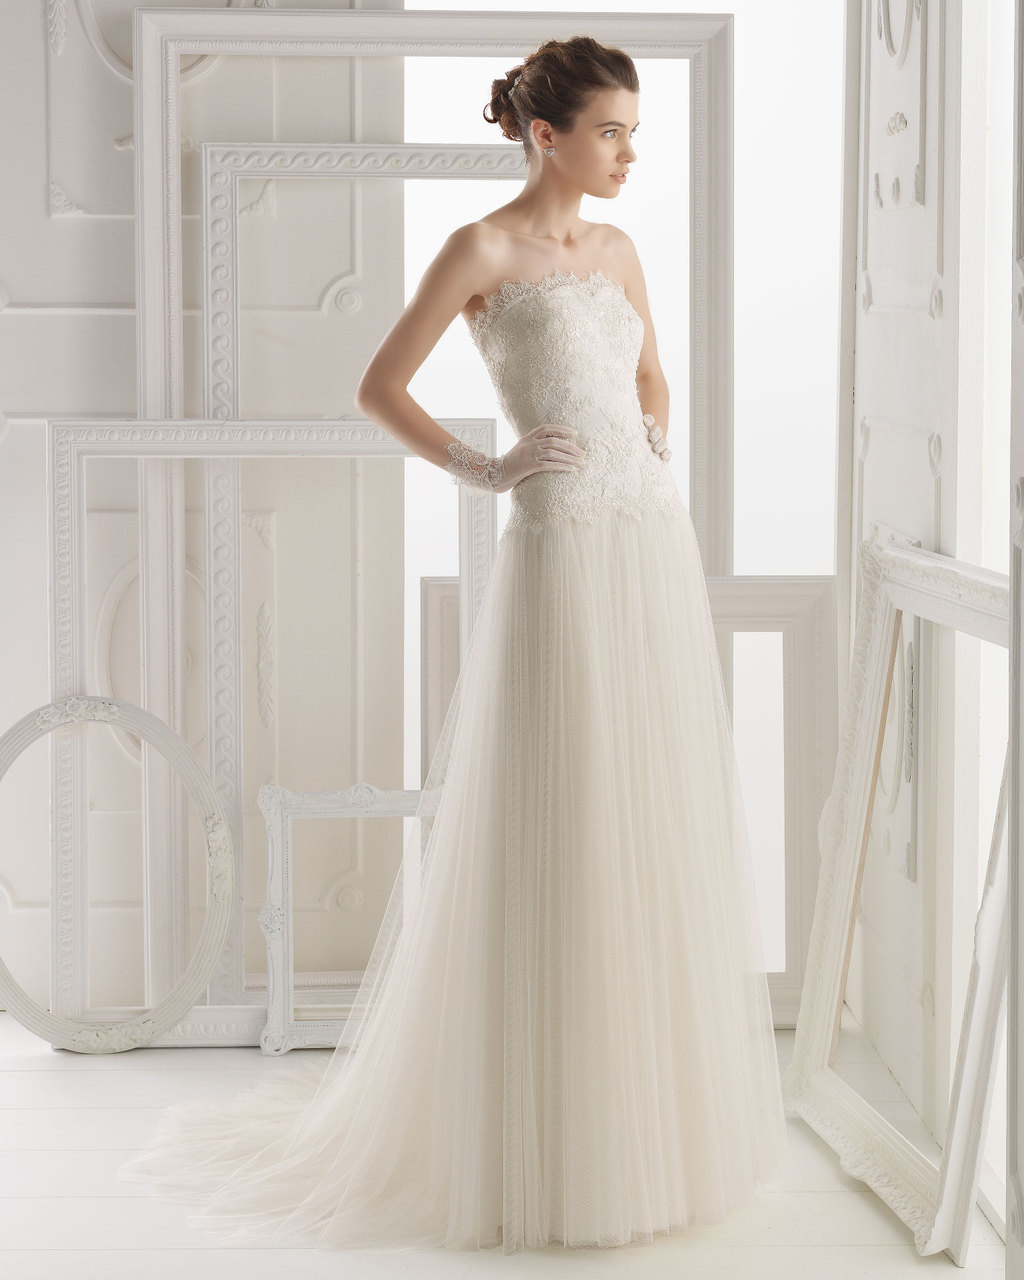 Aire Barcelona wedding dress 2014 Bridal Obadia